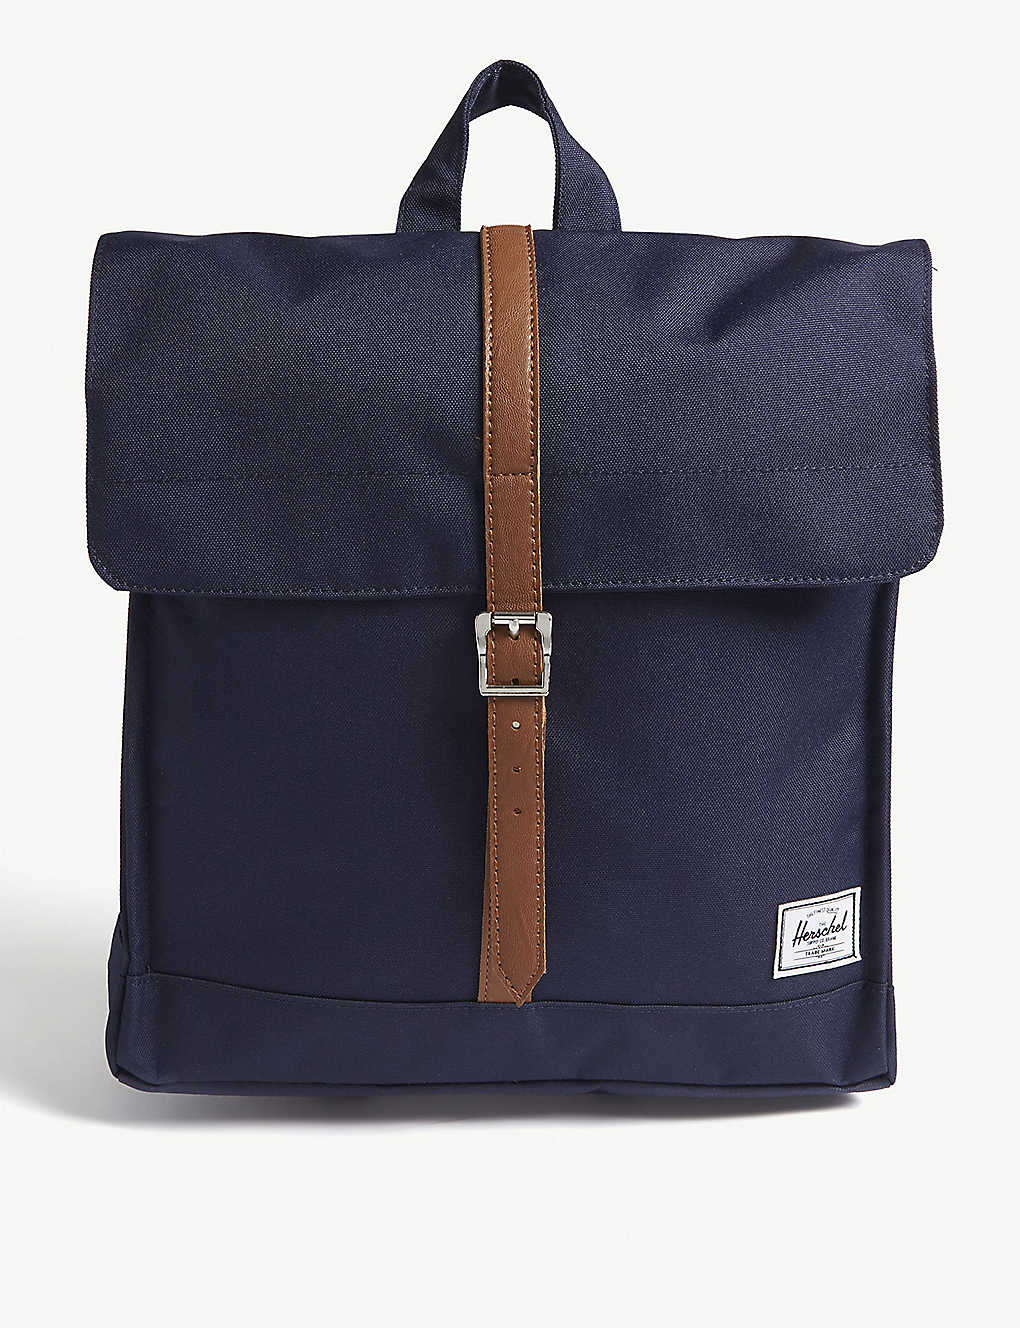 308be890be32 HERSCHEL SUPPLY CO - City mid-volume backpack